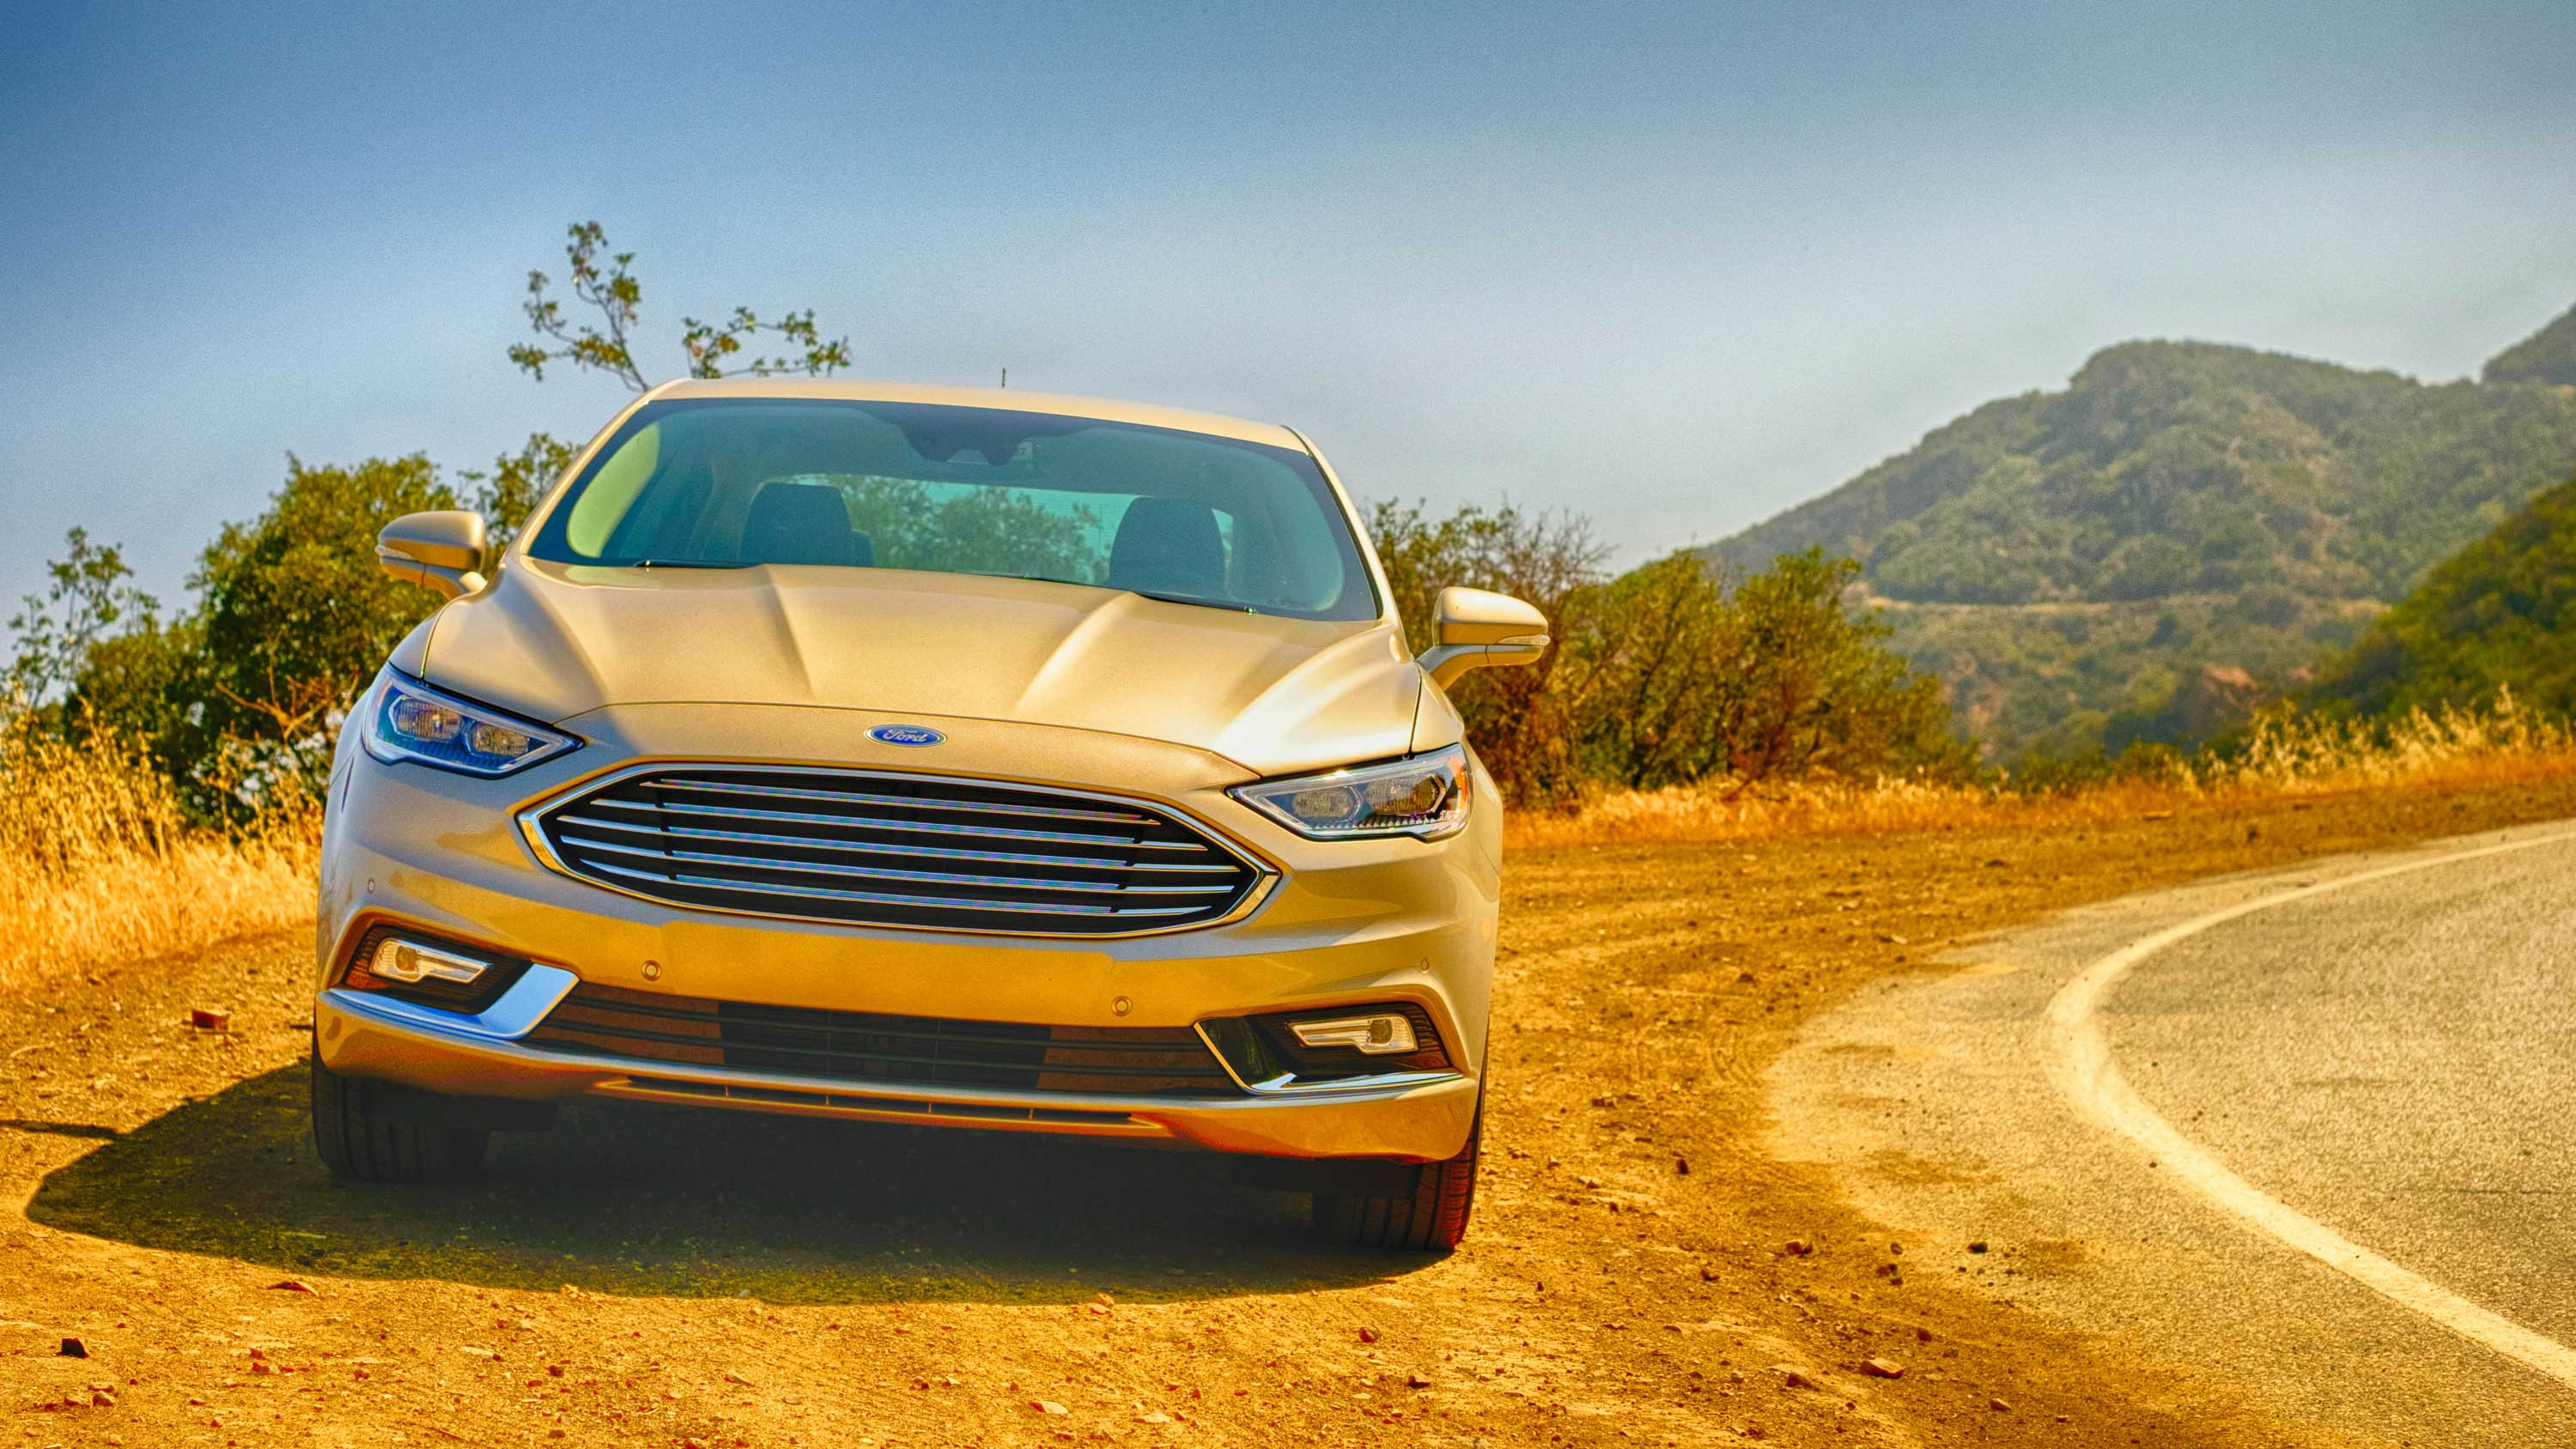 & The 2017 Ford Fusion is the best mid-size car you can buy | TechRadar markmcfarlin.com